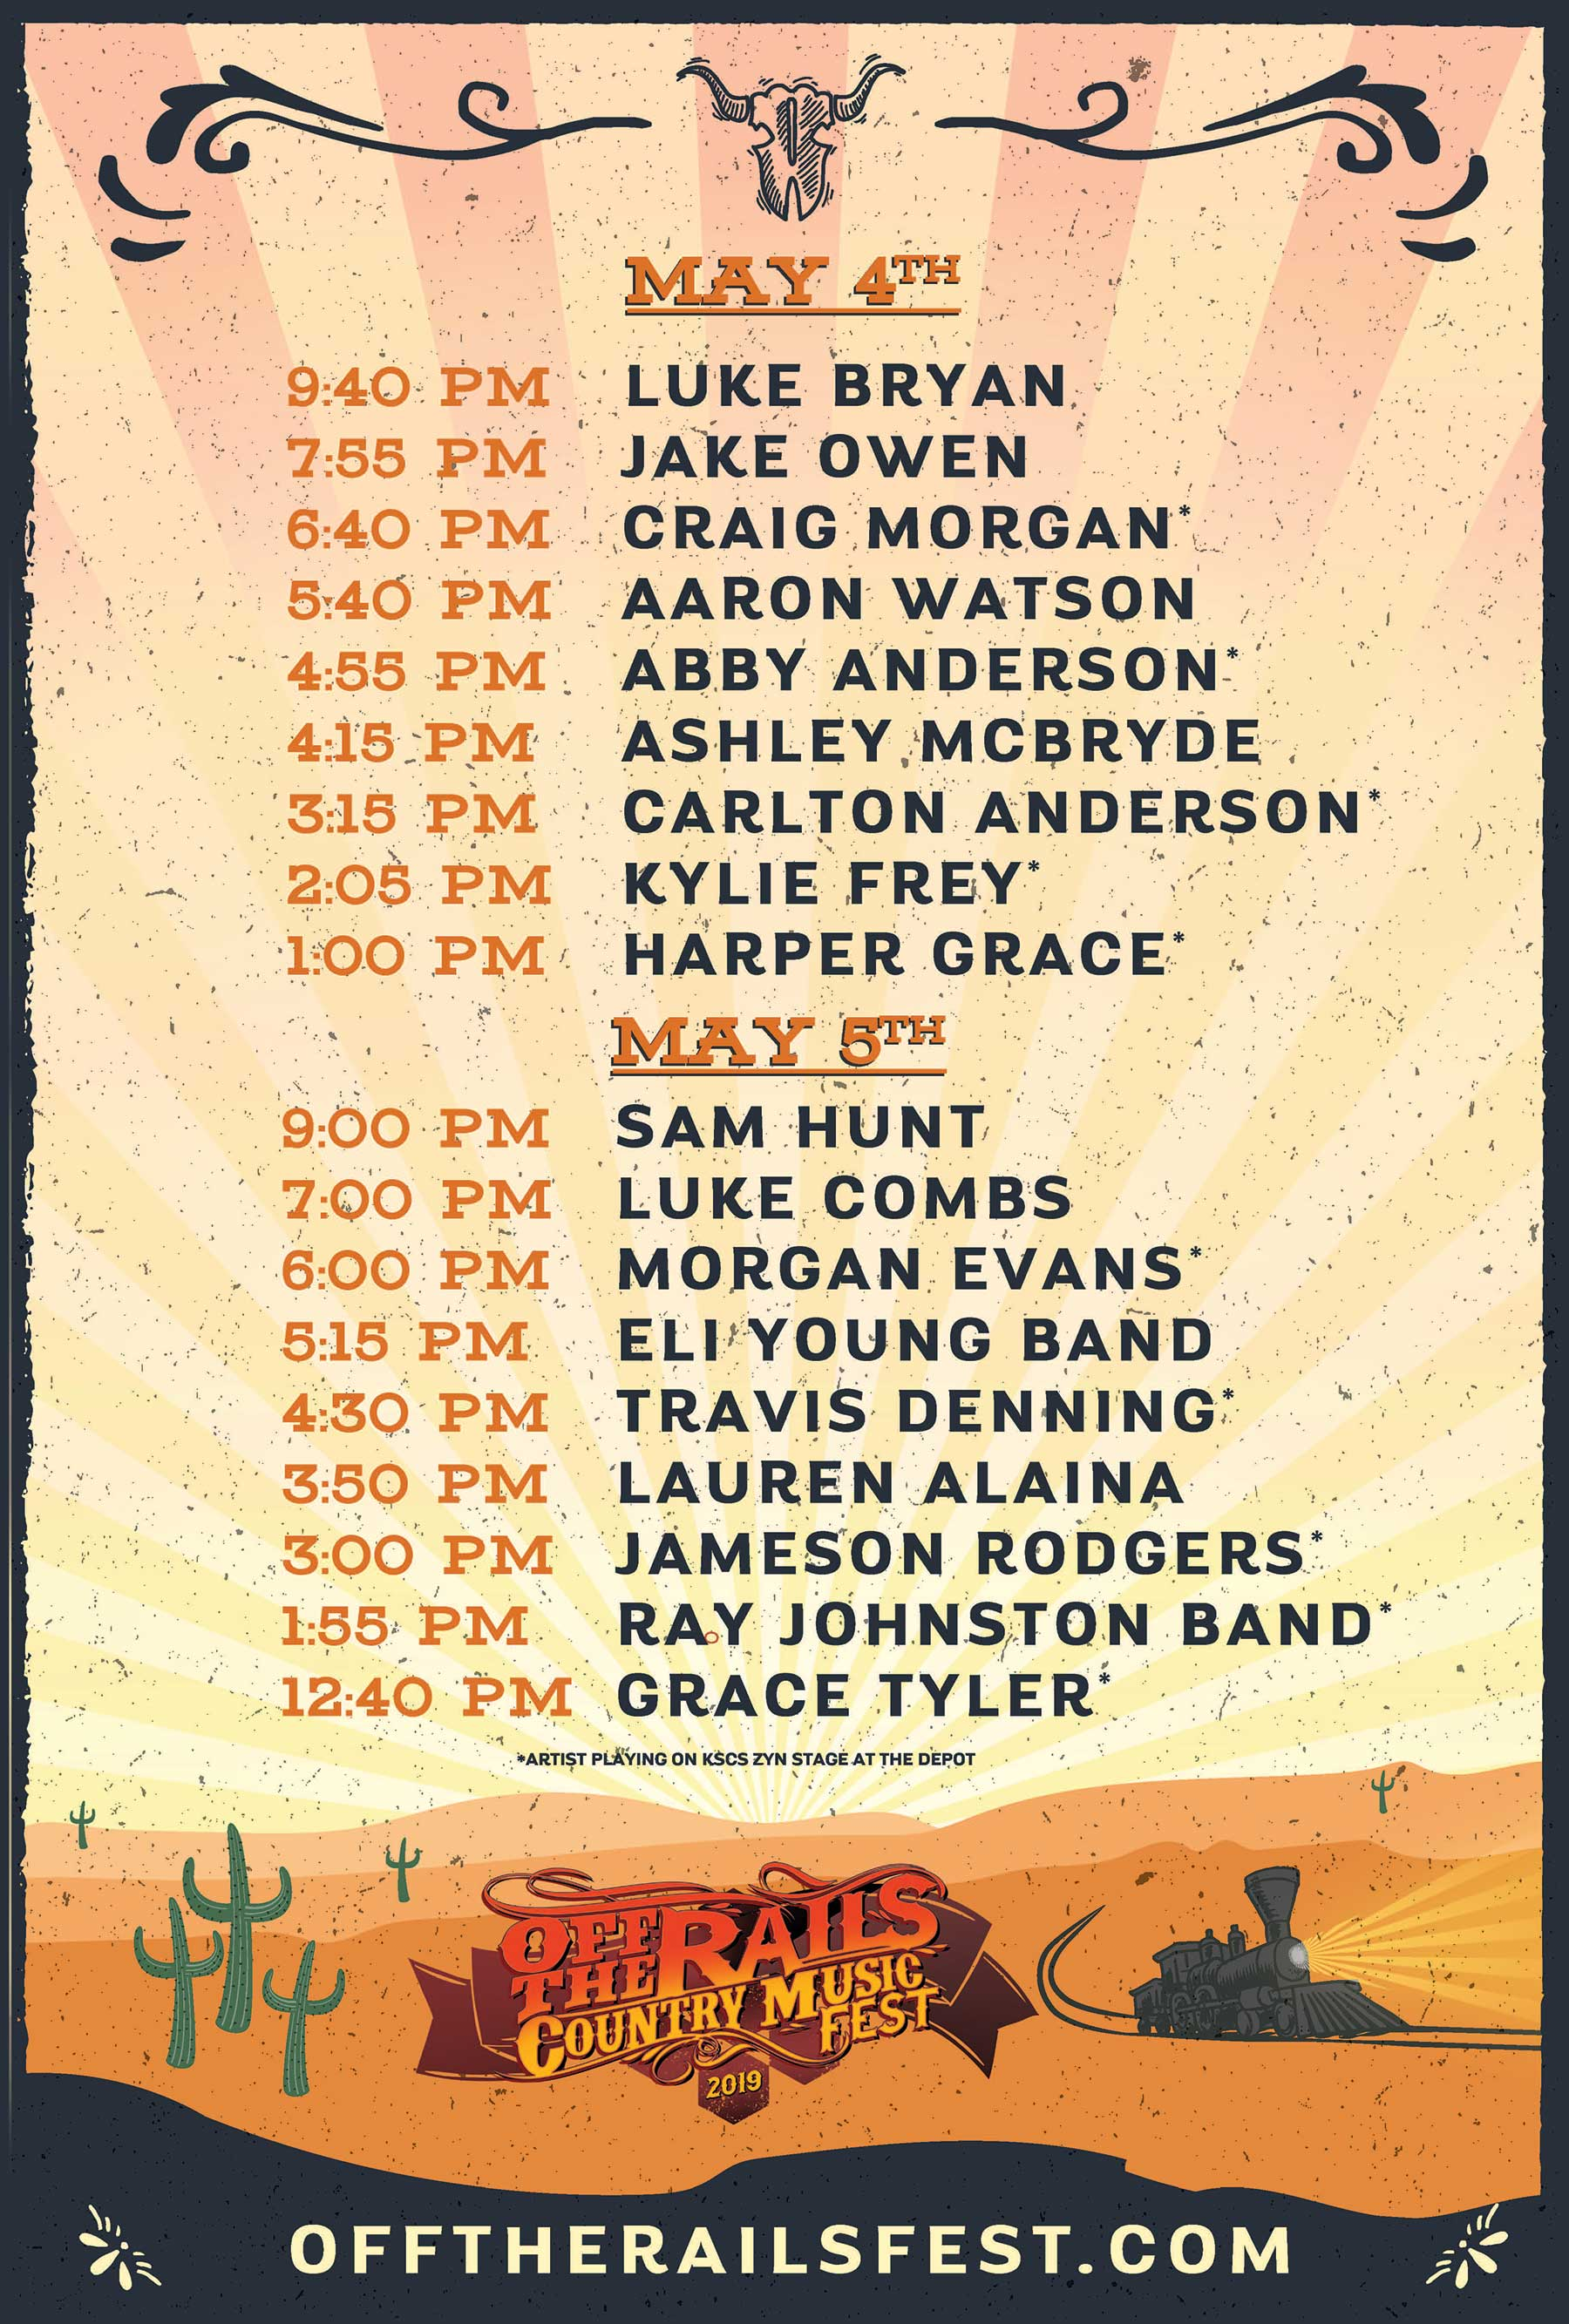 Off The Rails Set Times